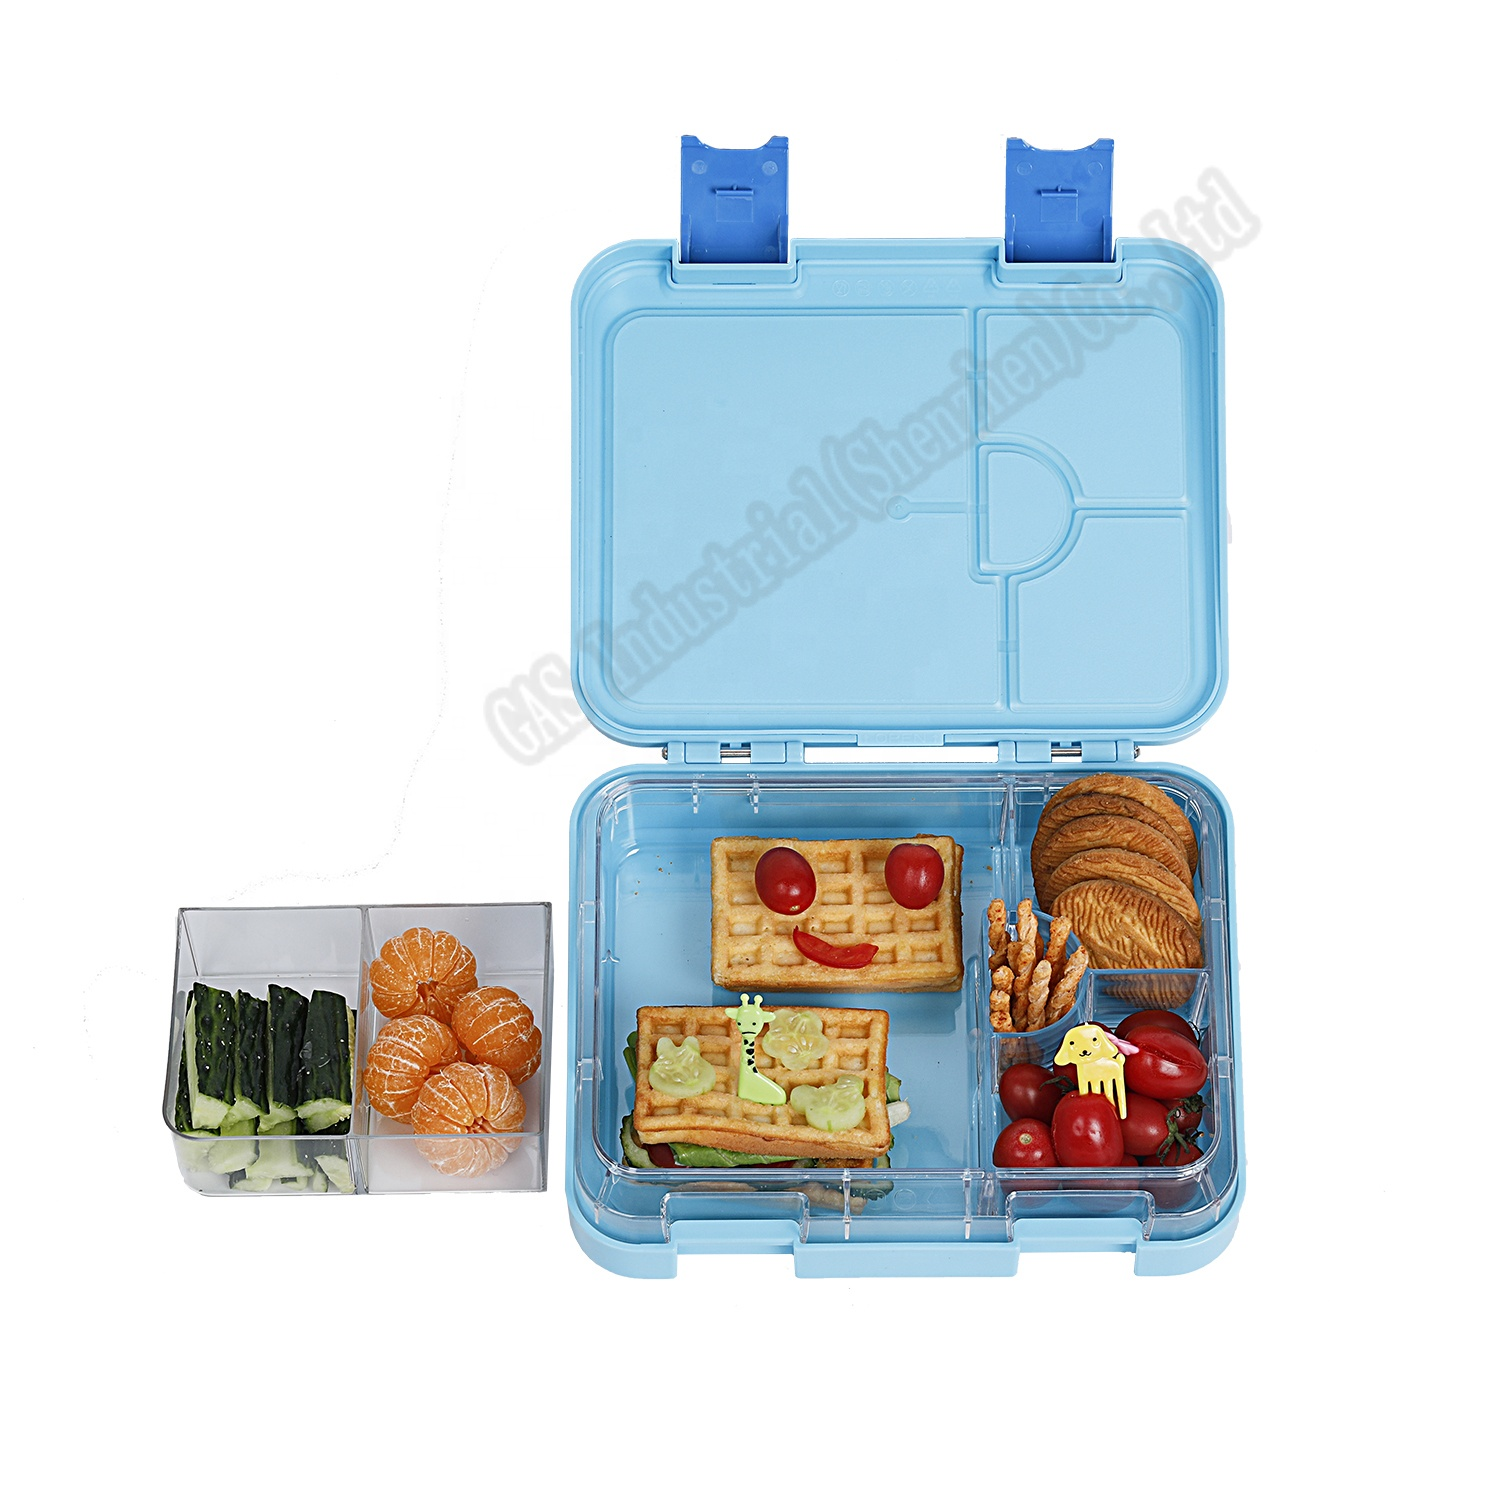 gas meal prep recyclable microwave 4 and 6 compartment lunch box bento kids buy microwave bento lunch box meal prep recyclable bento boxes lunch box bento kids product on alibaba com